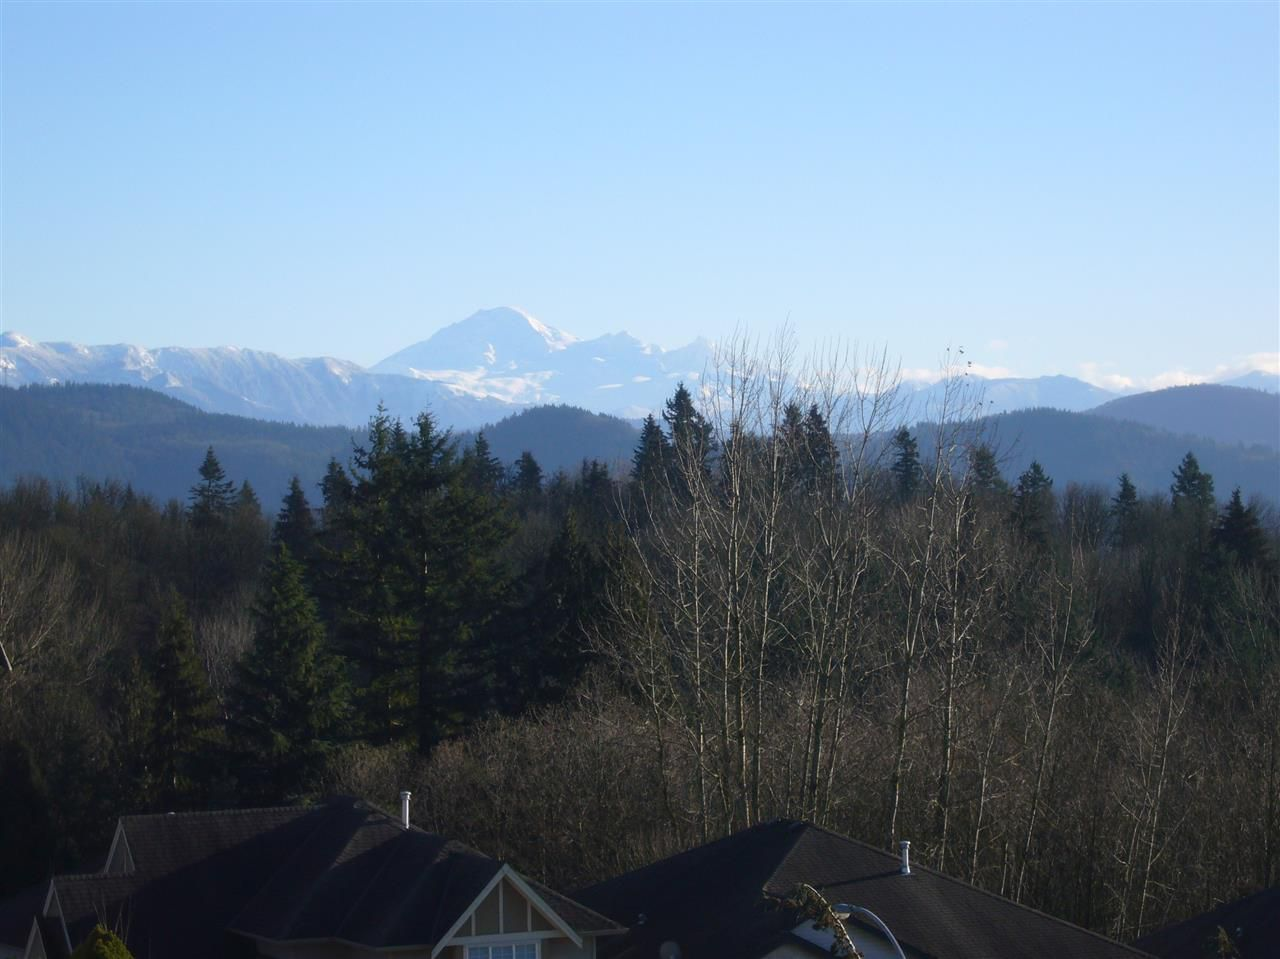 Main Photo: 33797 KNIGHT Avenue in Mission: Mission BC Land for sale : MLS®# R2124412